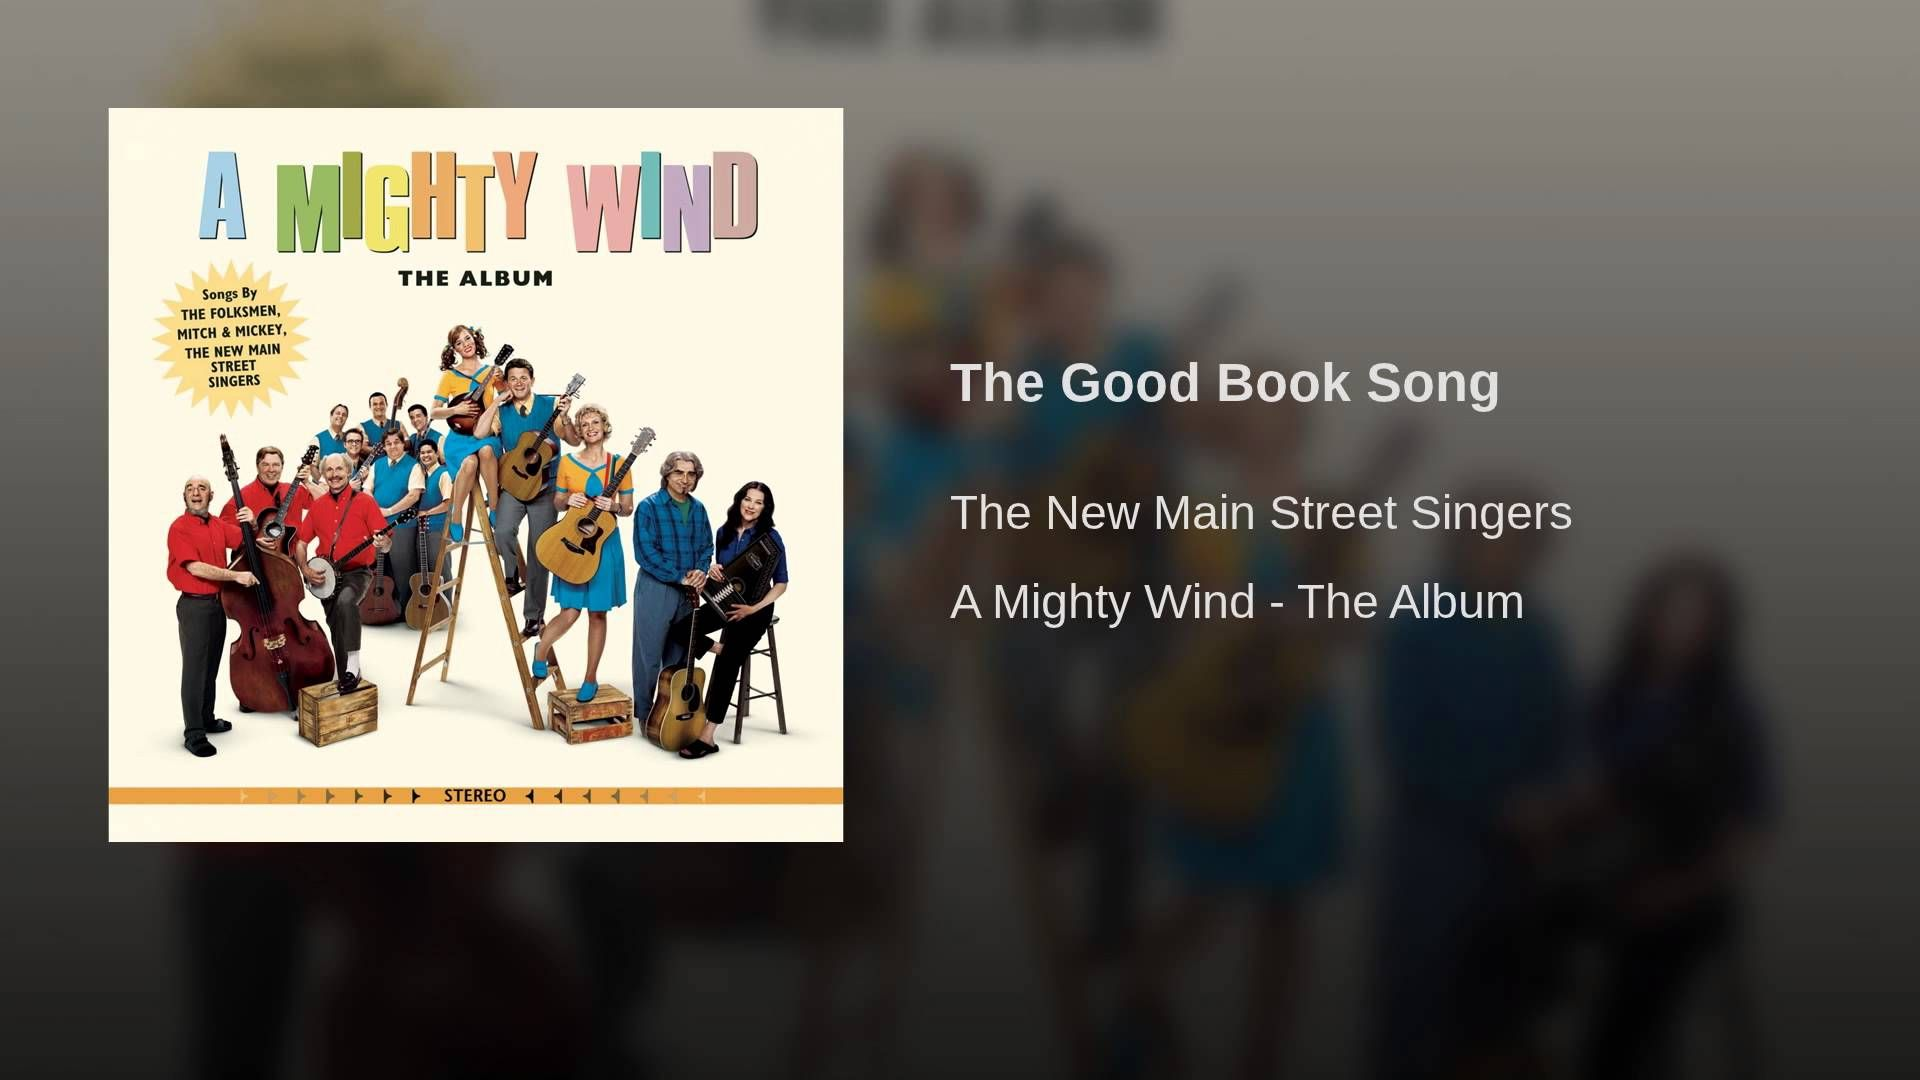 Catman S Choice 6 28 17 The Good Book Song By The New Main Street